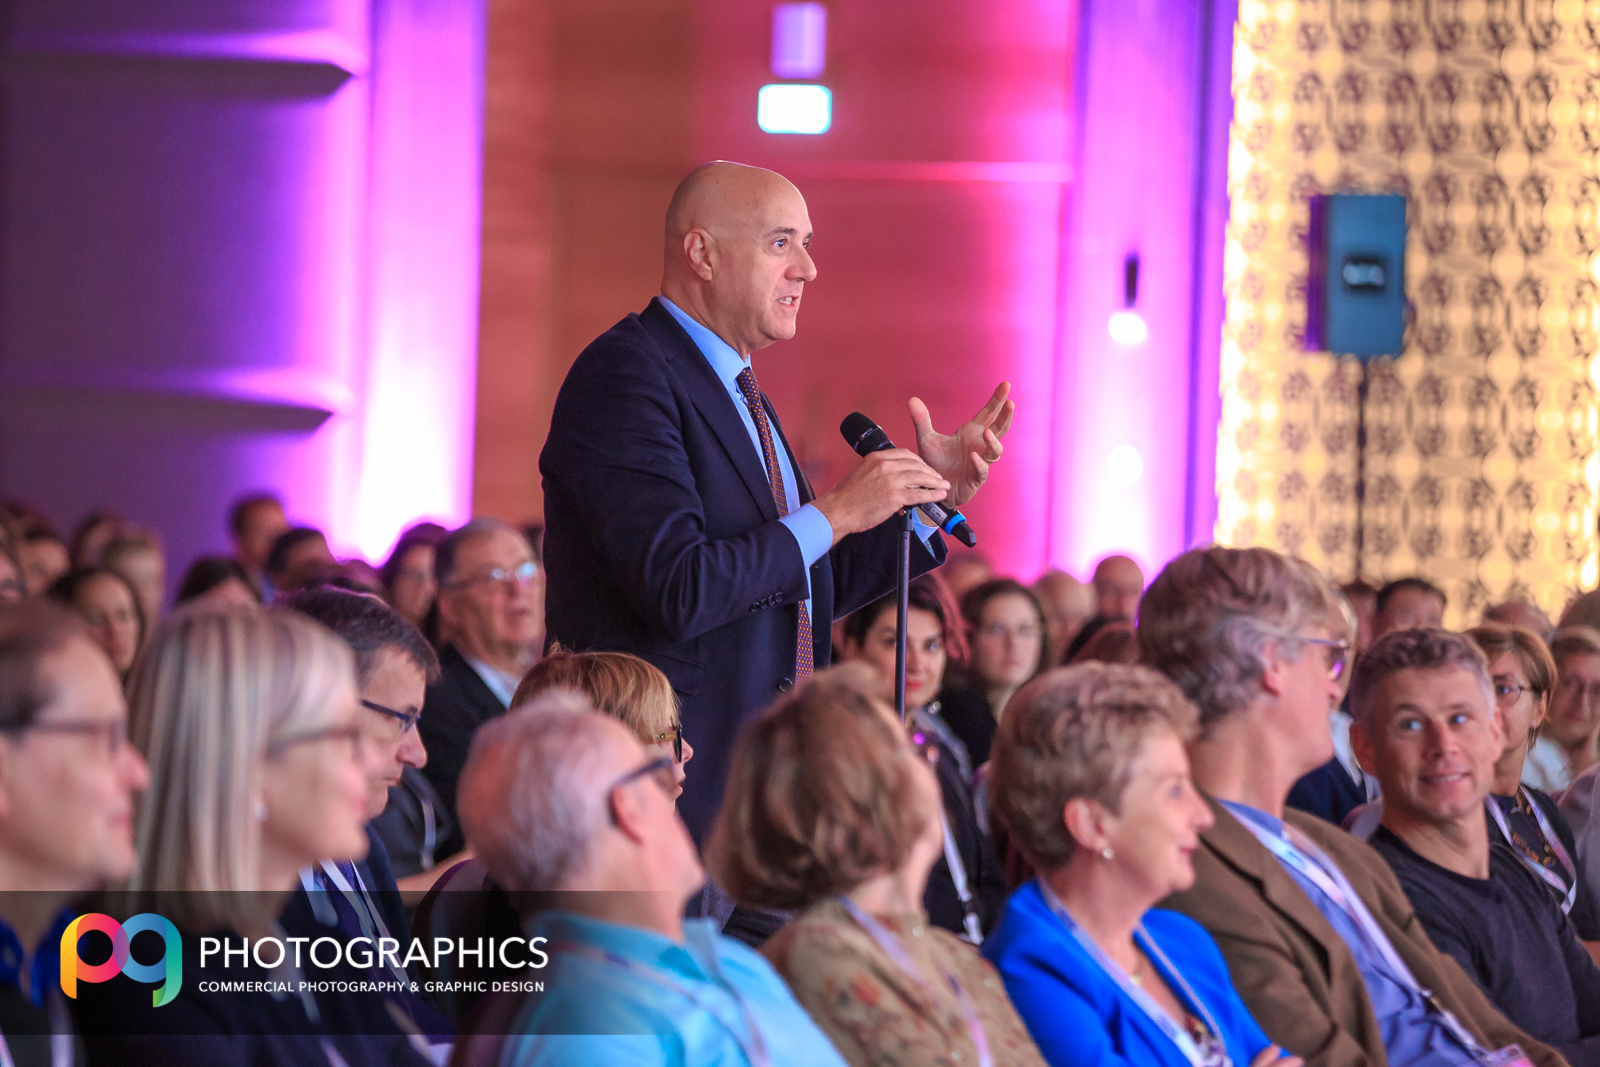 conference-event-photography-edinburgh-glasgow-berlin-9.jpg